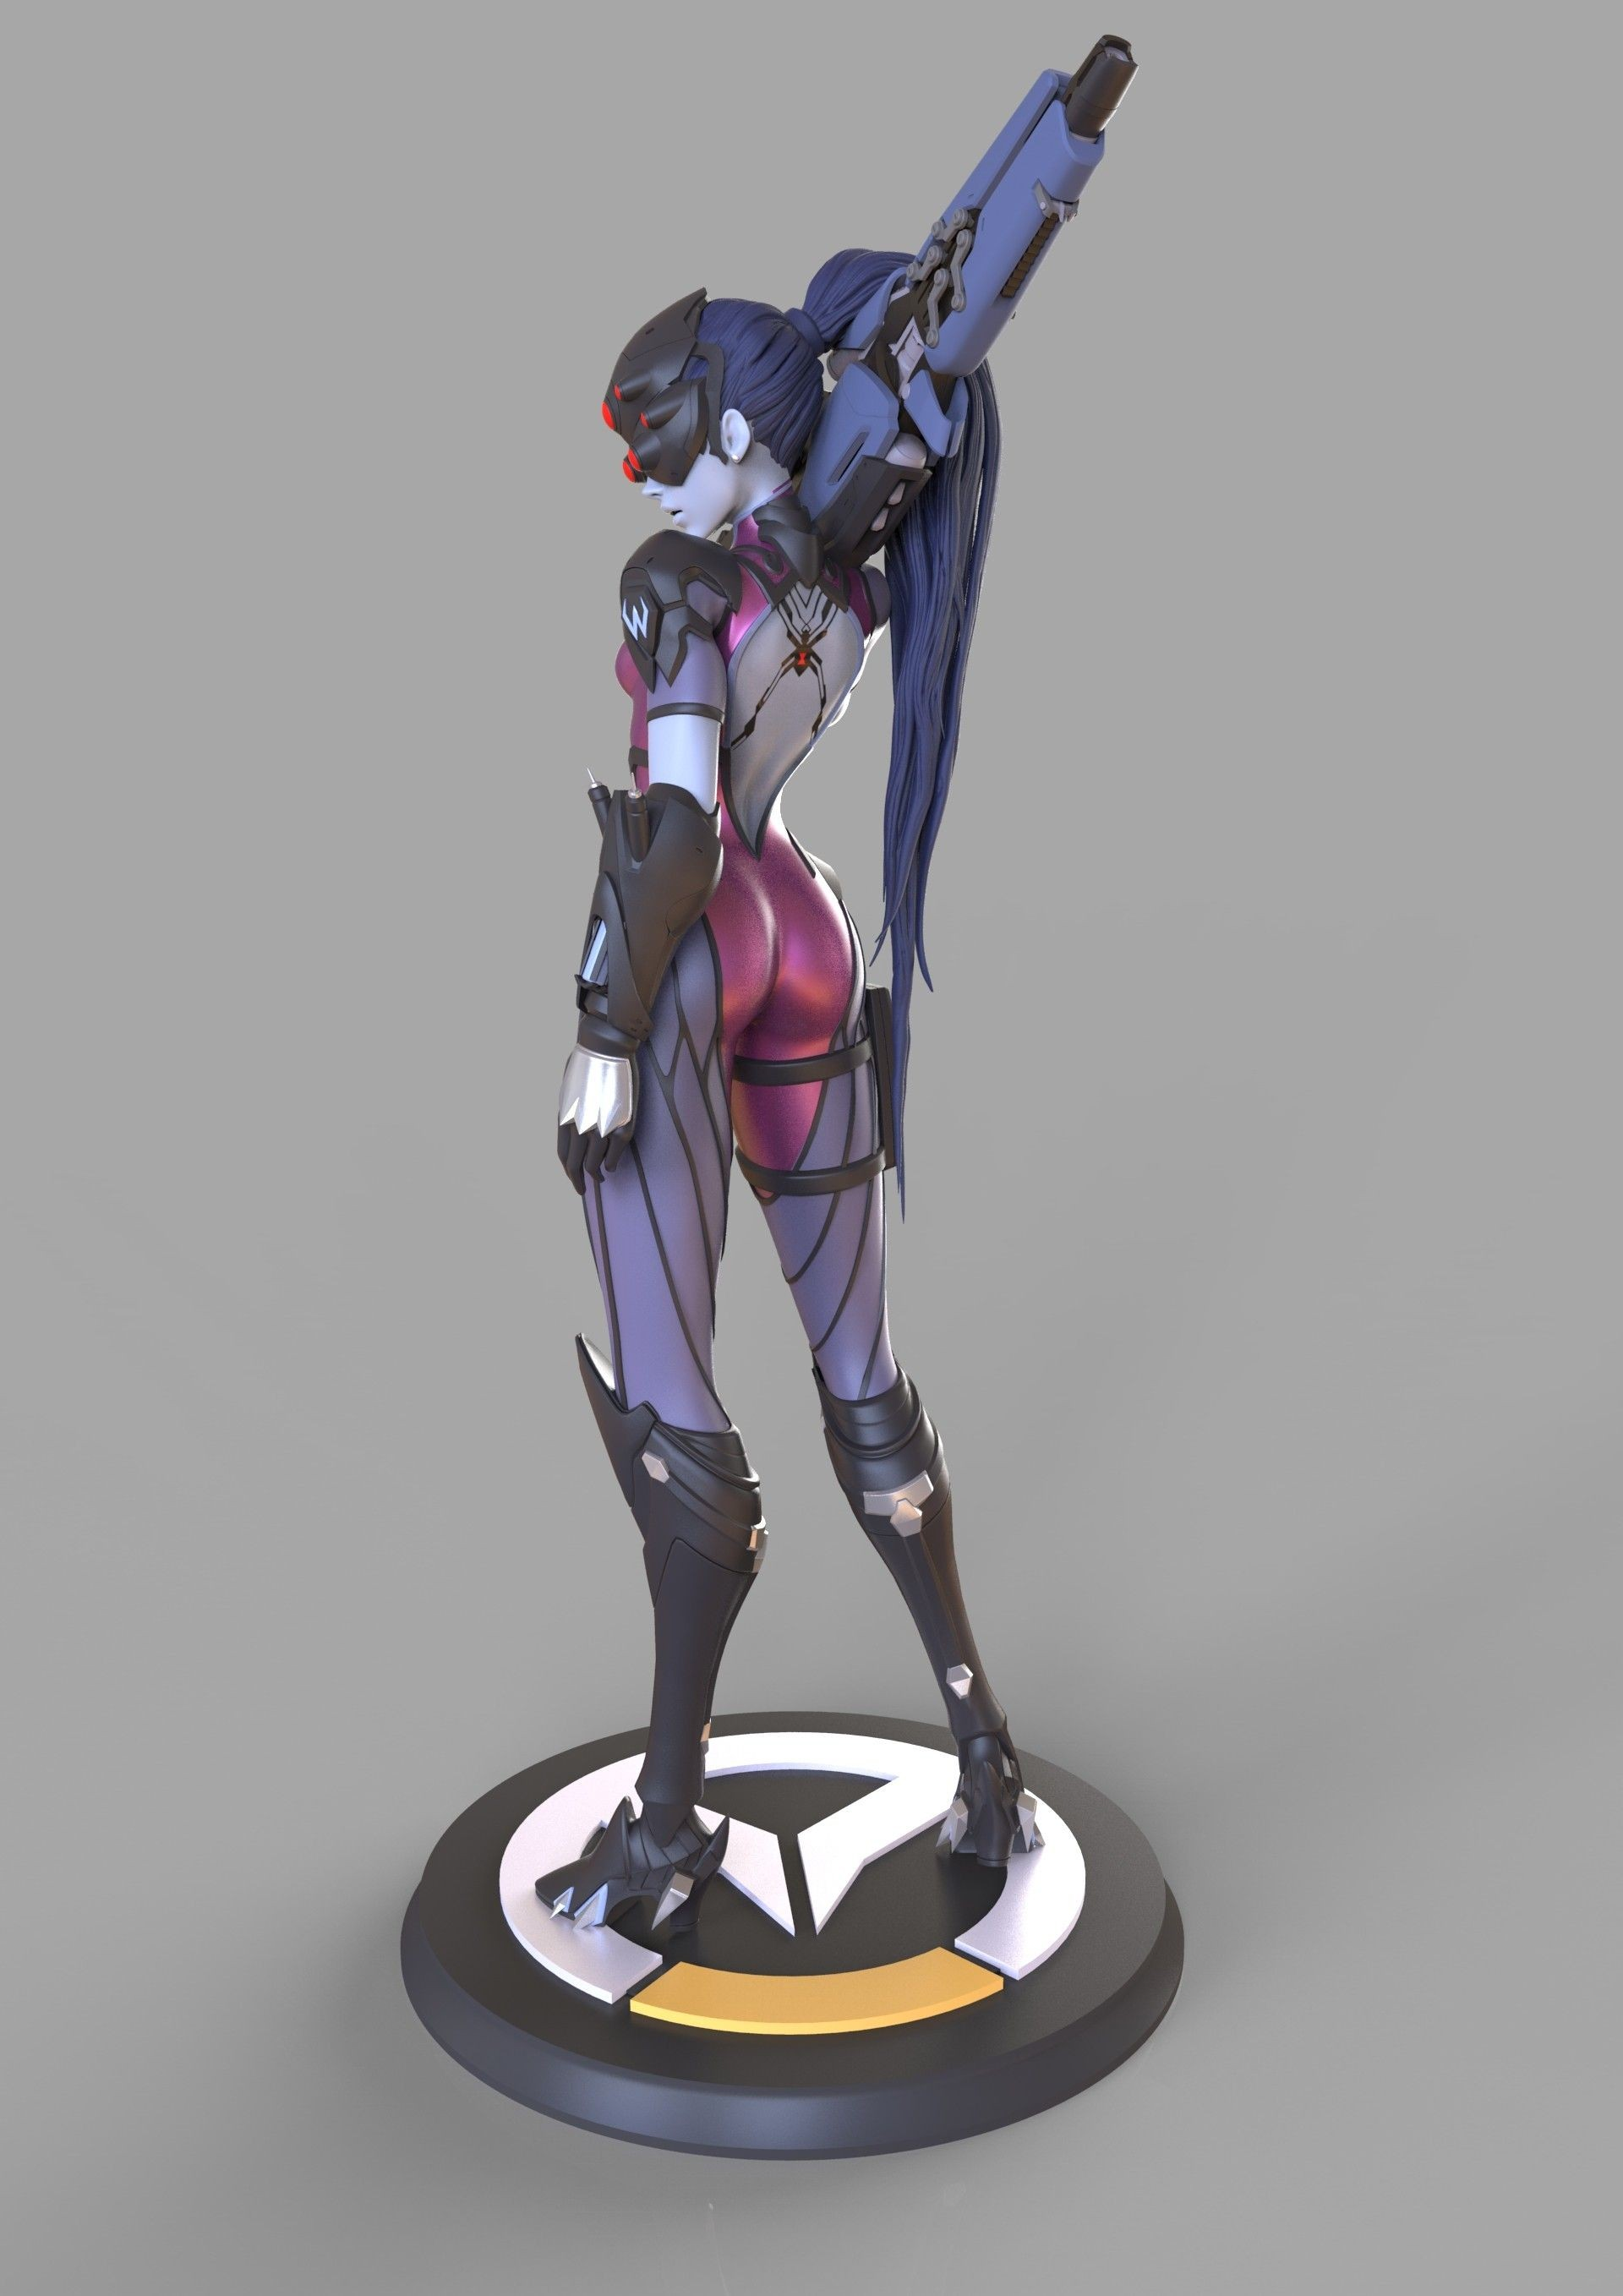 ArtStation Widowmaker Overwatch figure preview Caizergues Noel